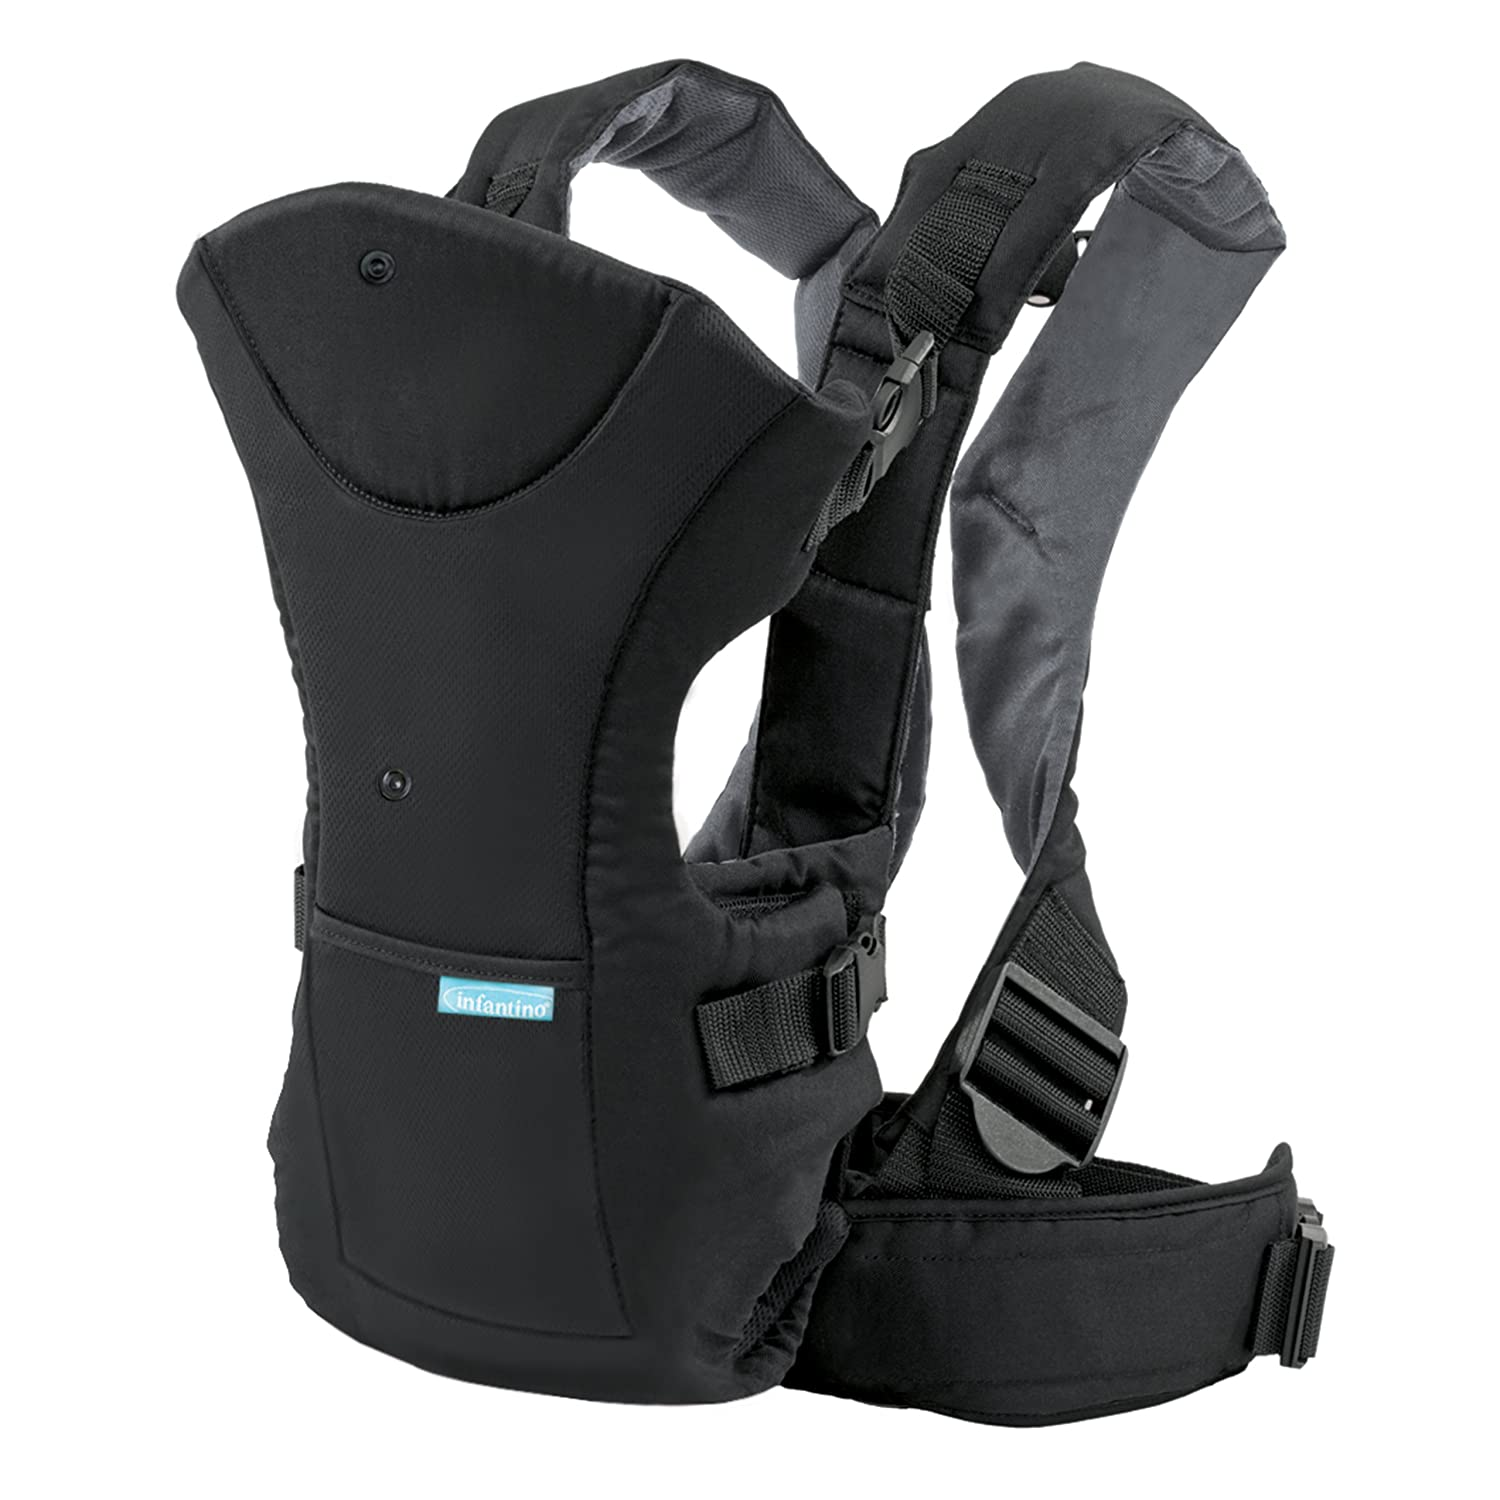 Infantino Flip 3 Position Carrier 200-103